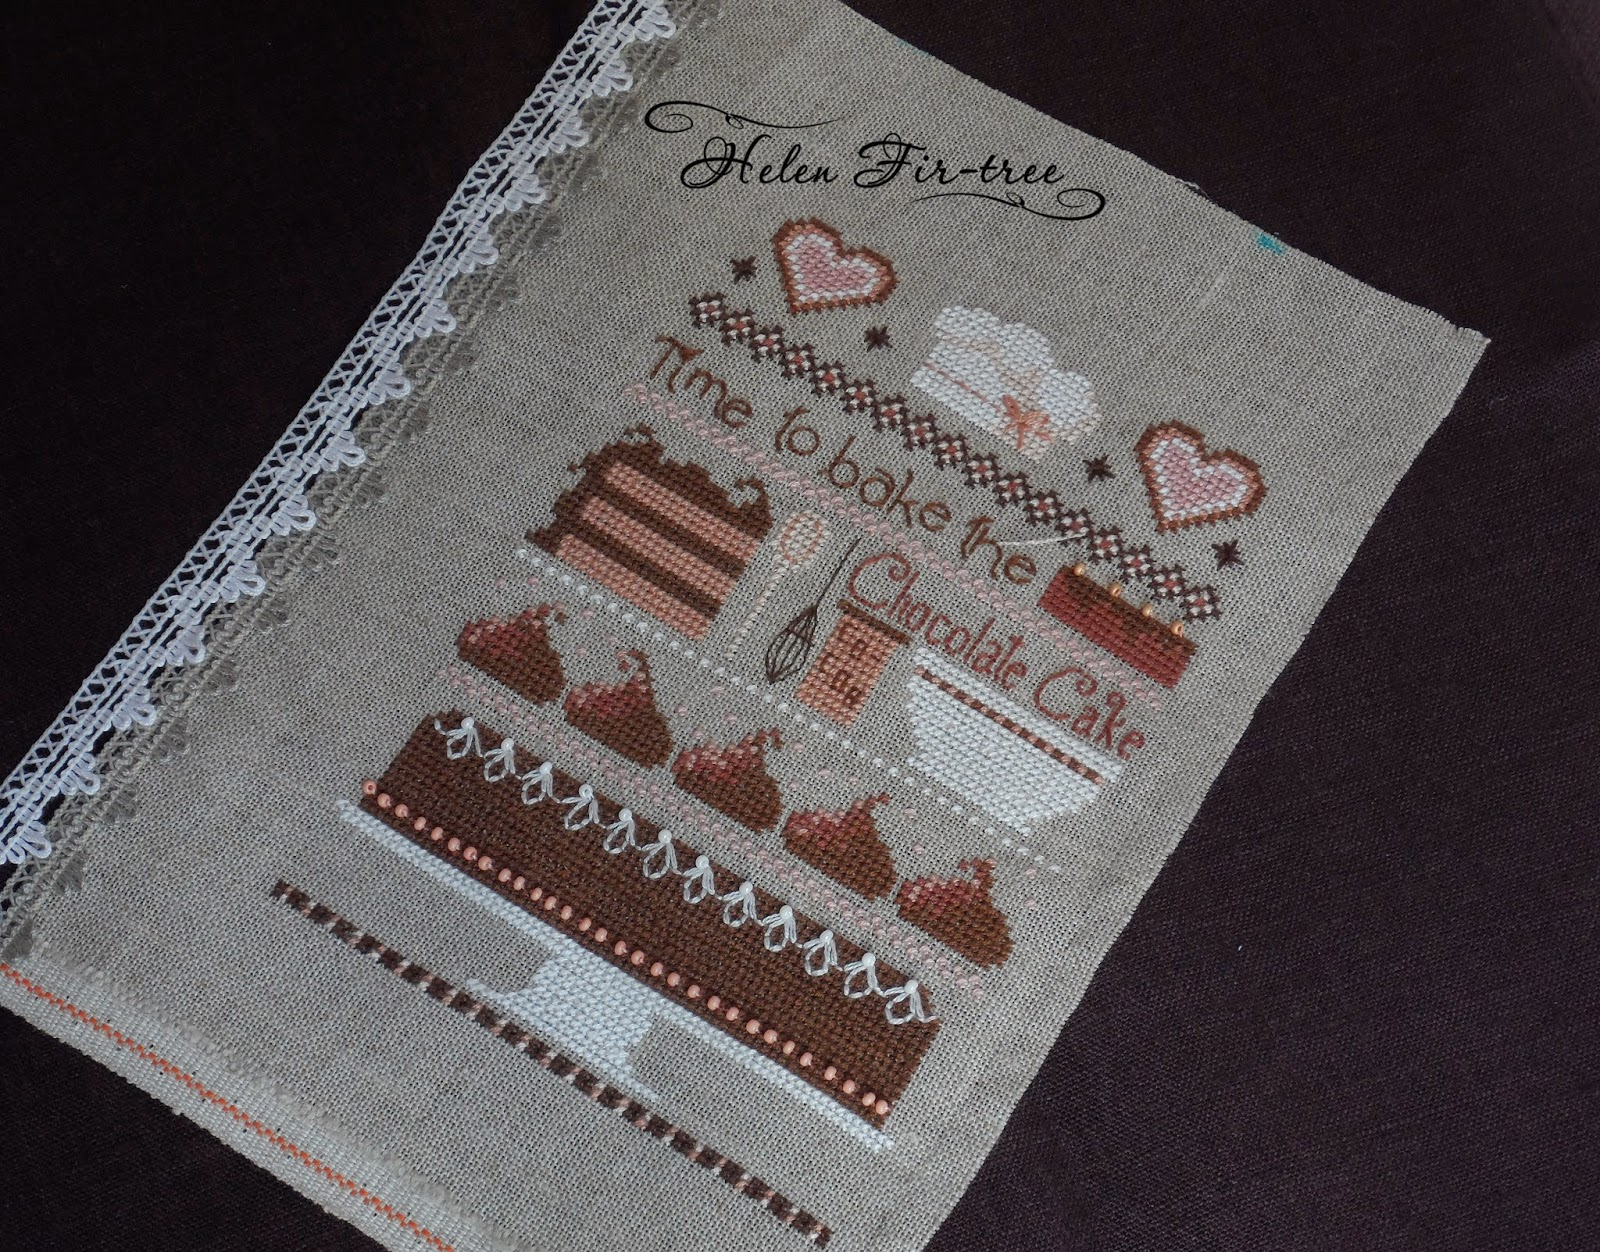 Helen Fir-tree вышивка блокнота embroidery notepad Chocolate cake sampler